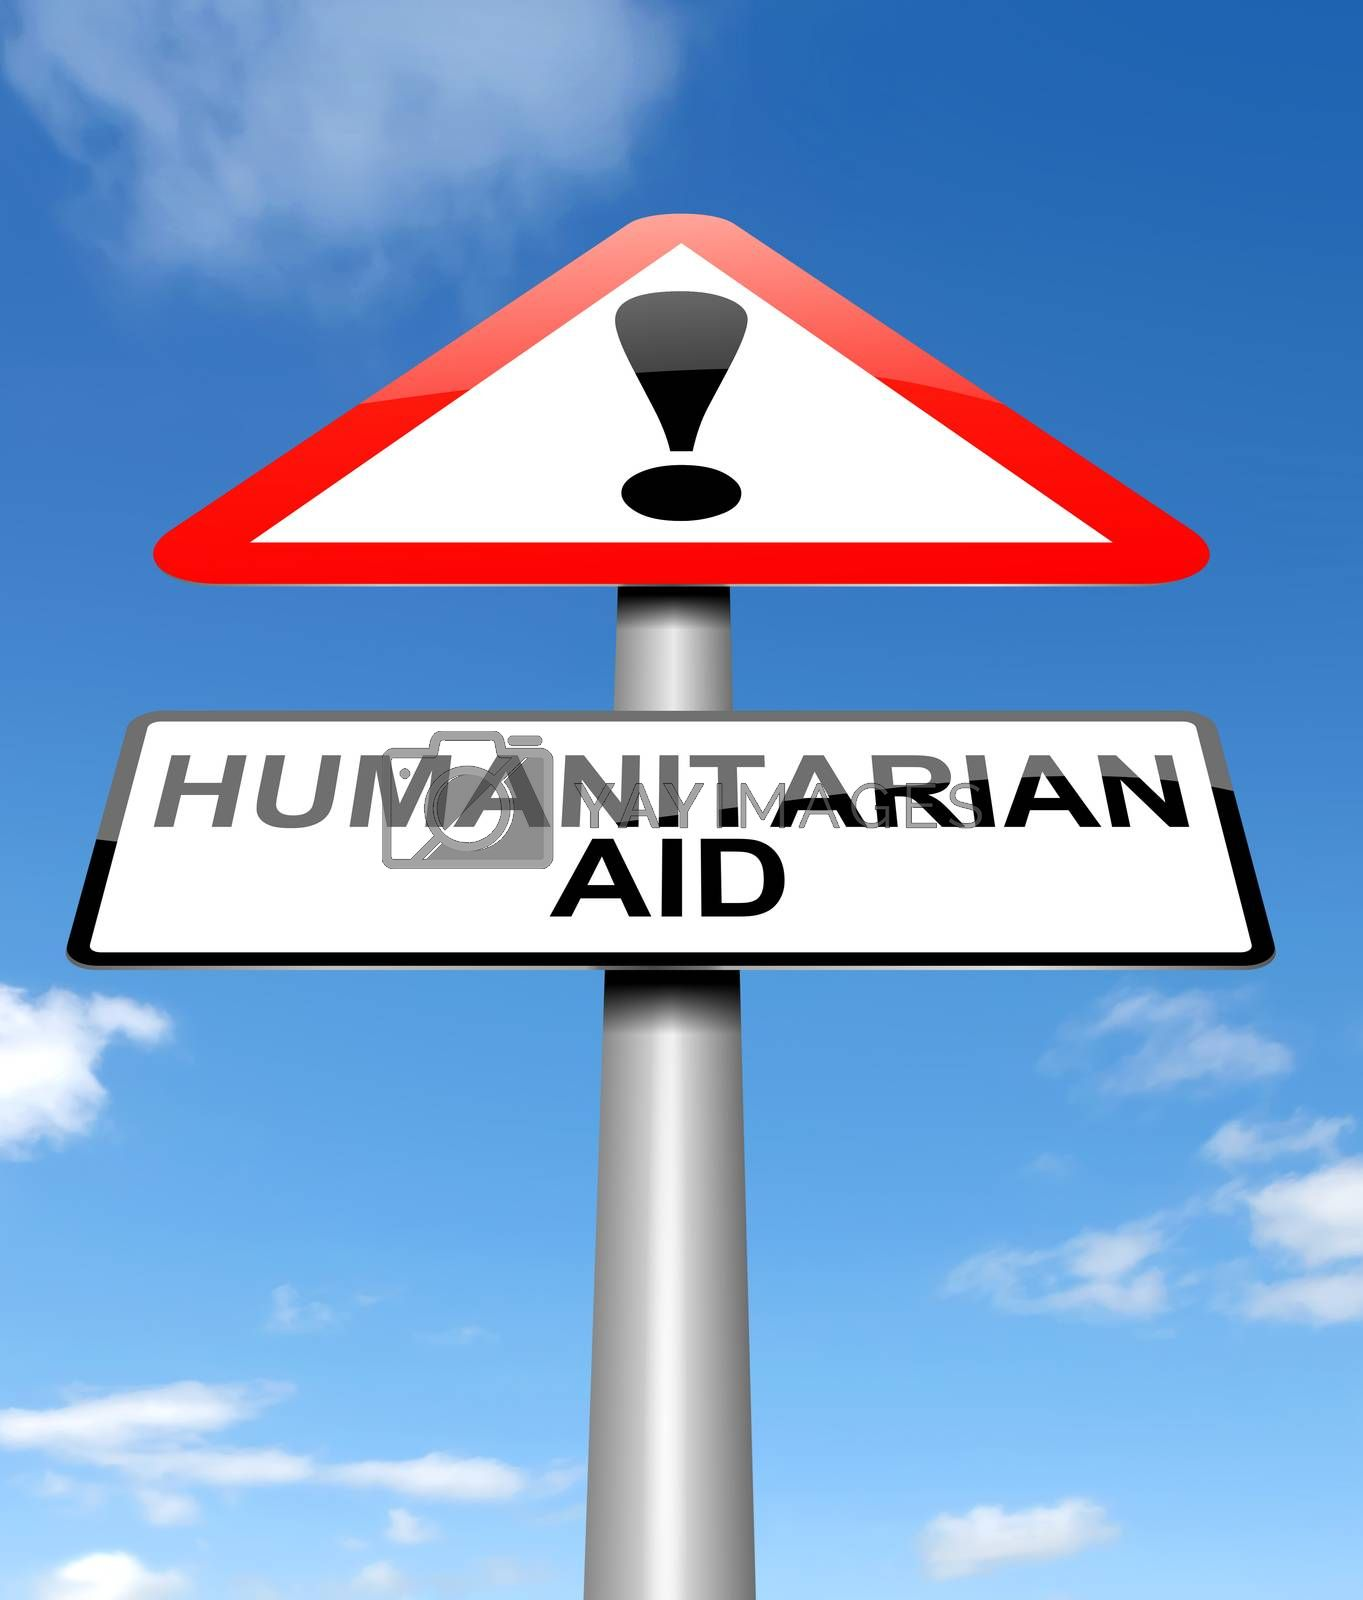 Illustration depicting a sign with a humanitarian aid concept.